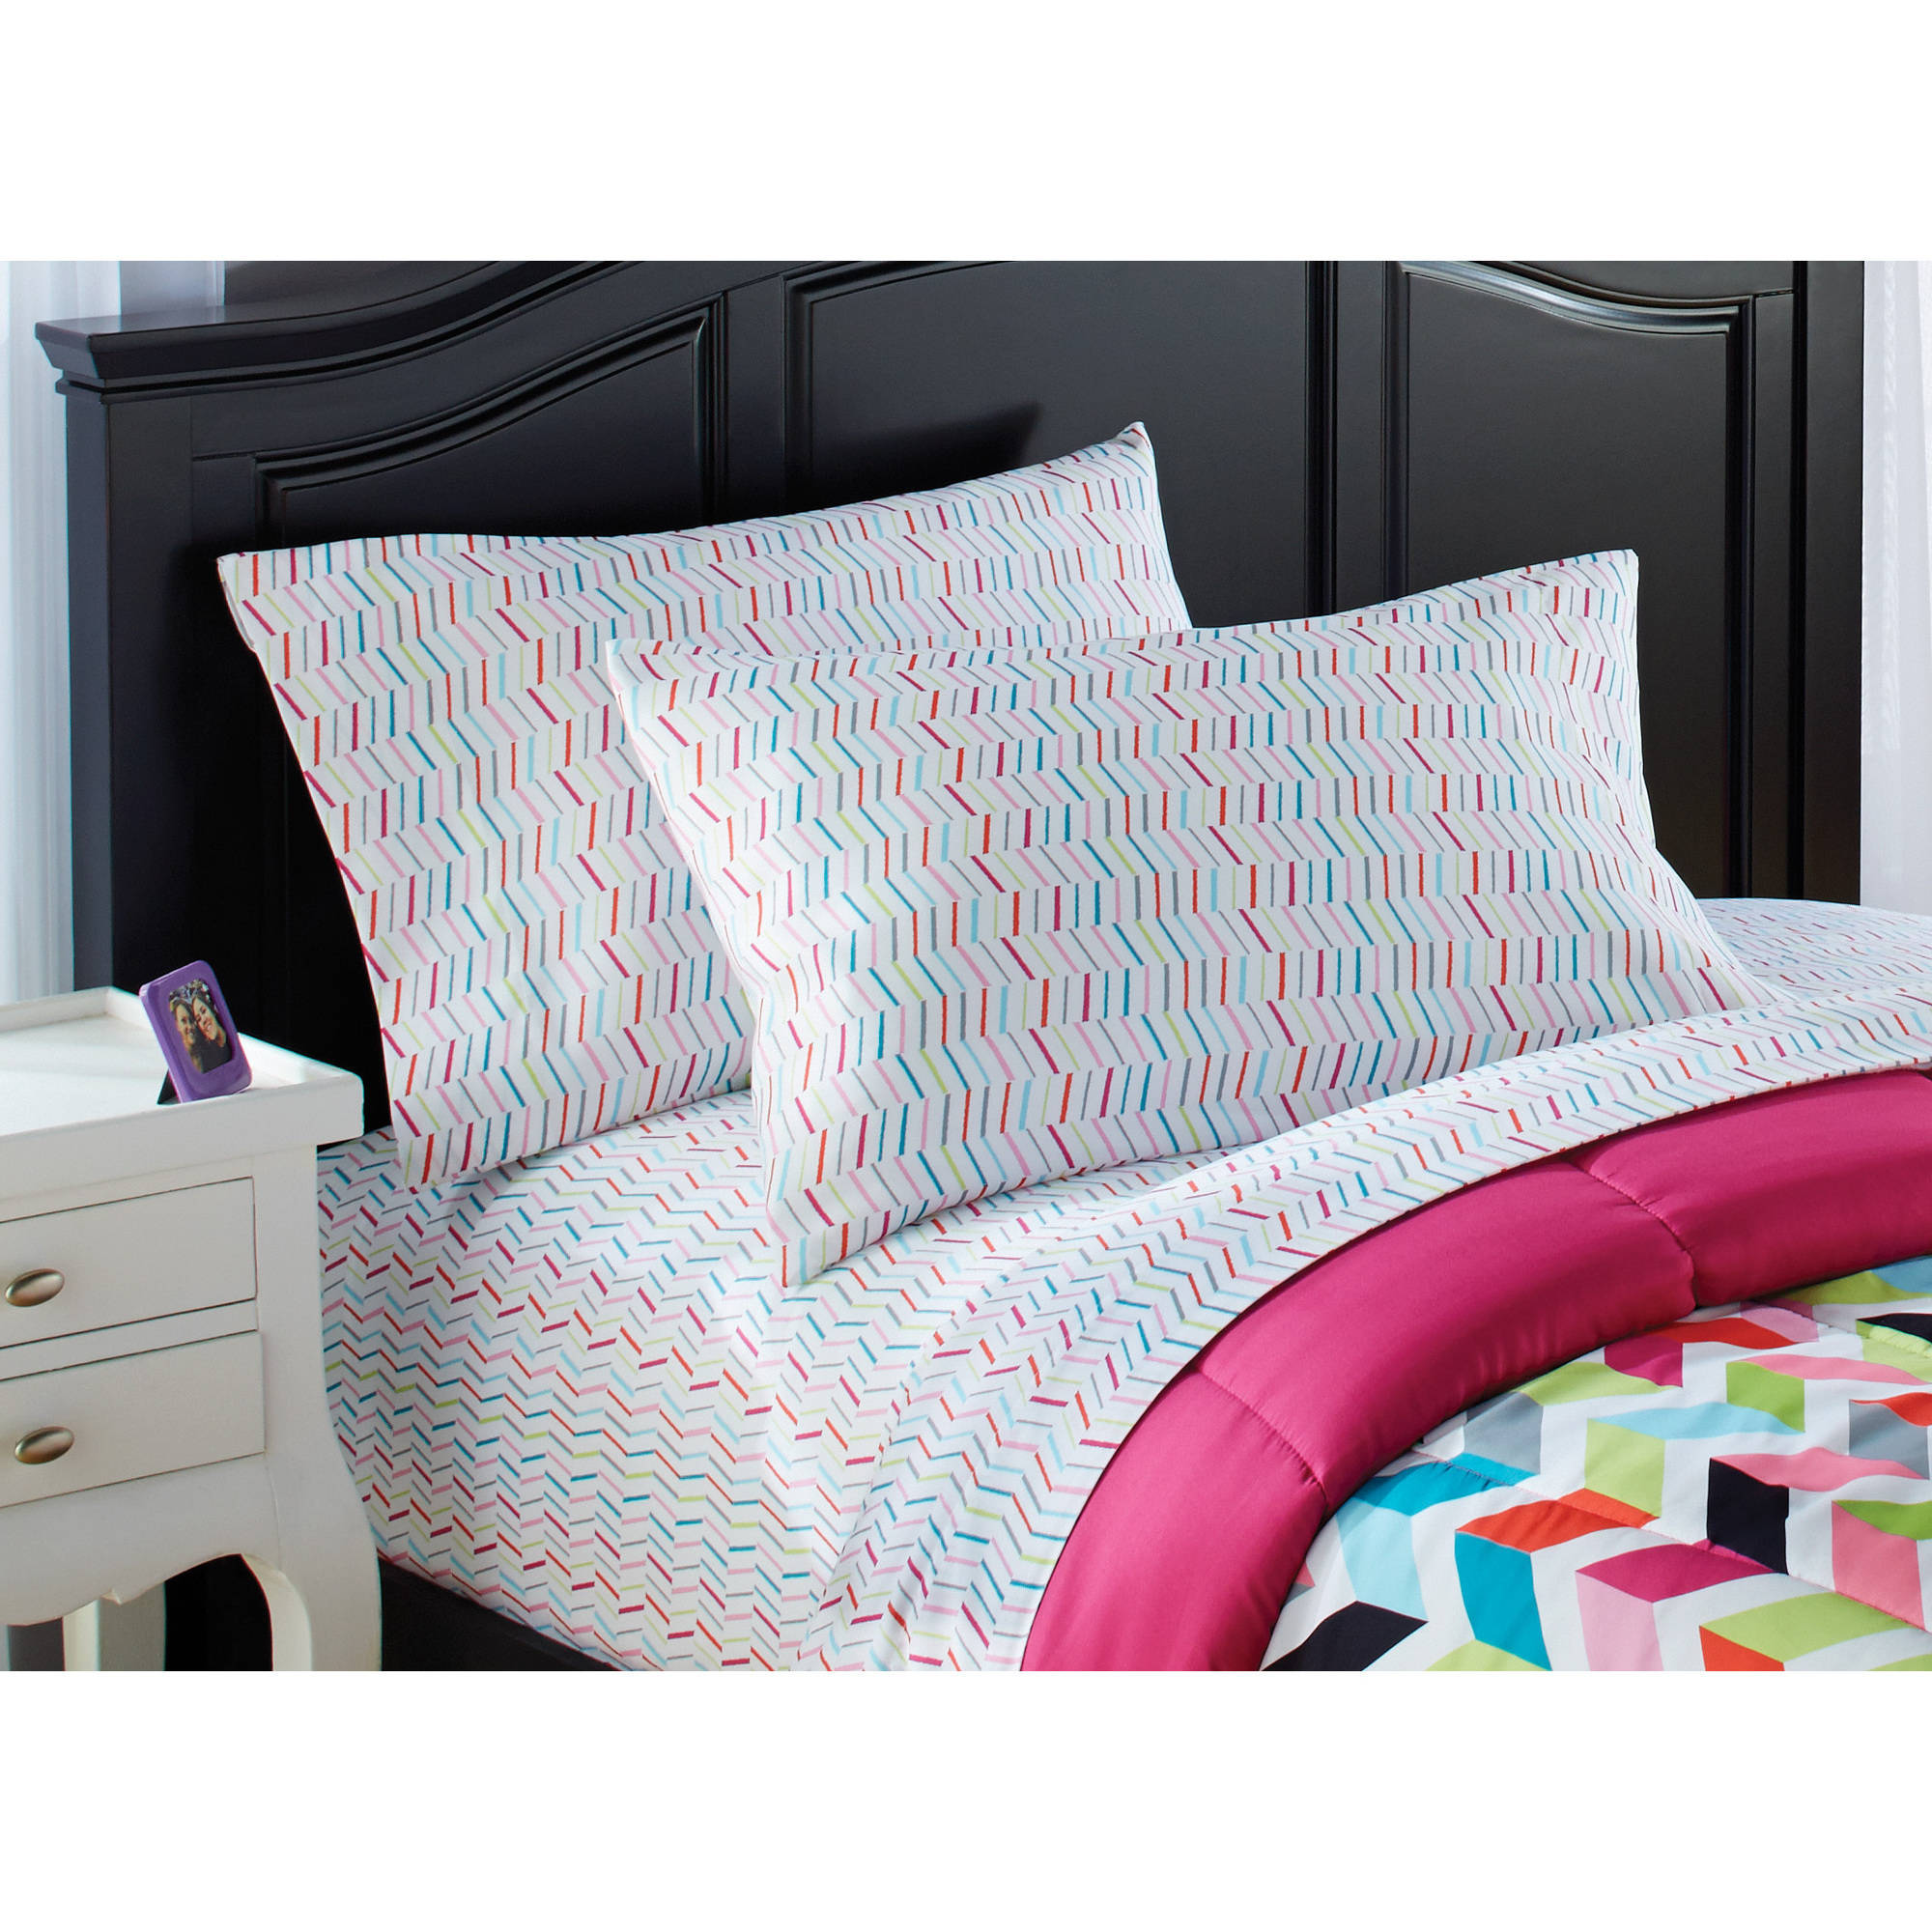 Kmart Bed Sets | Kmart Patio Furniture | Kmart Bedding